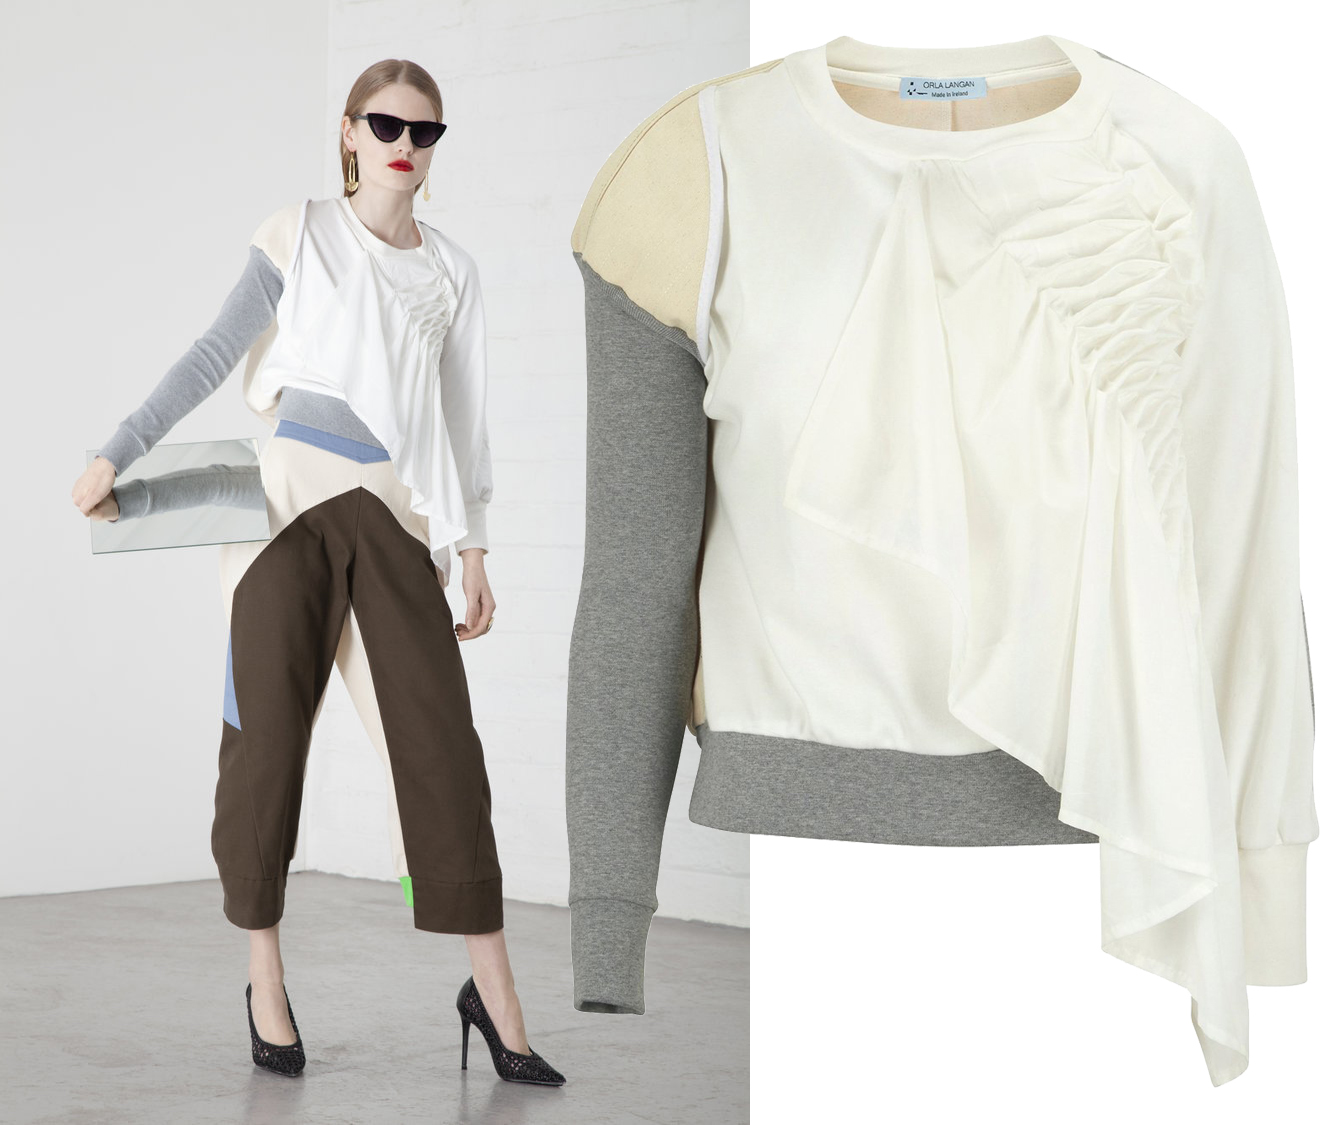 Ruched+cotton+top+and+denim+engineered+trousers+copy.jpg